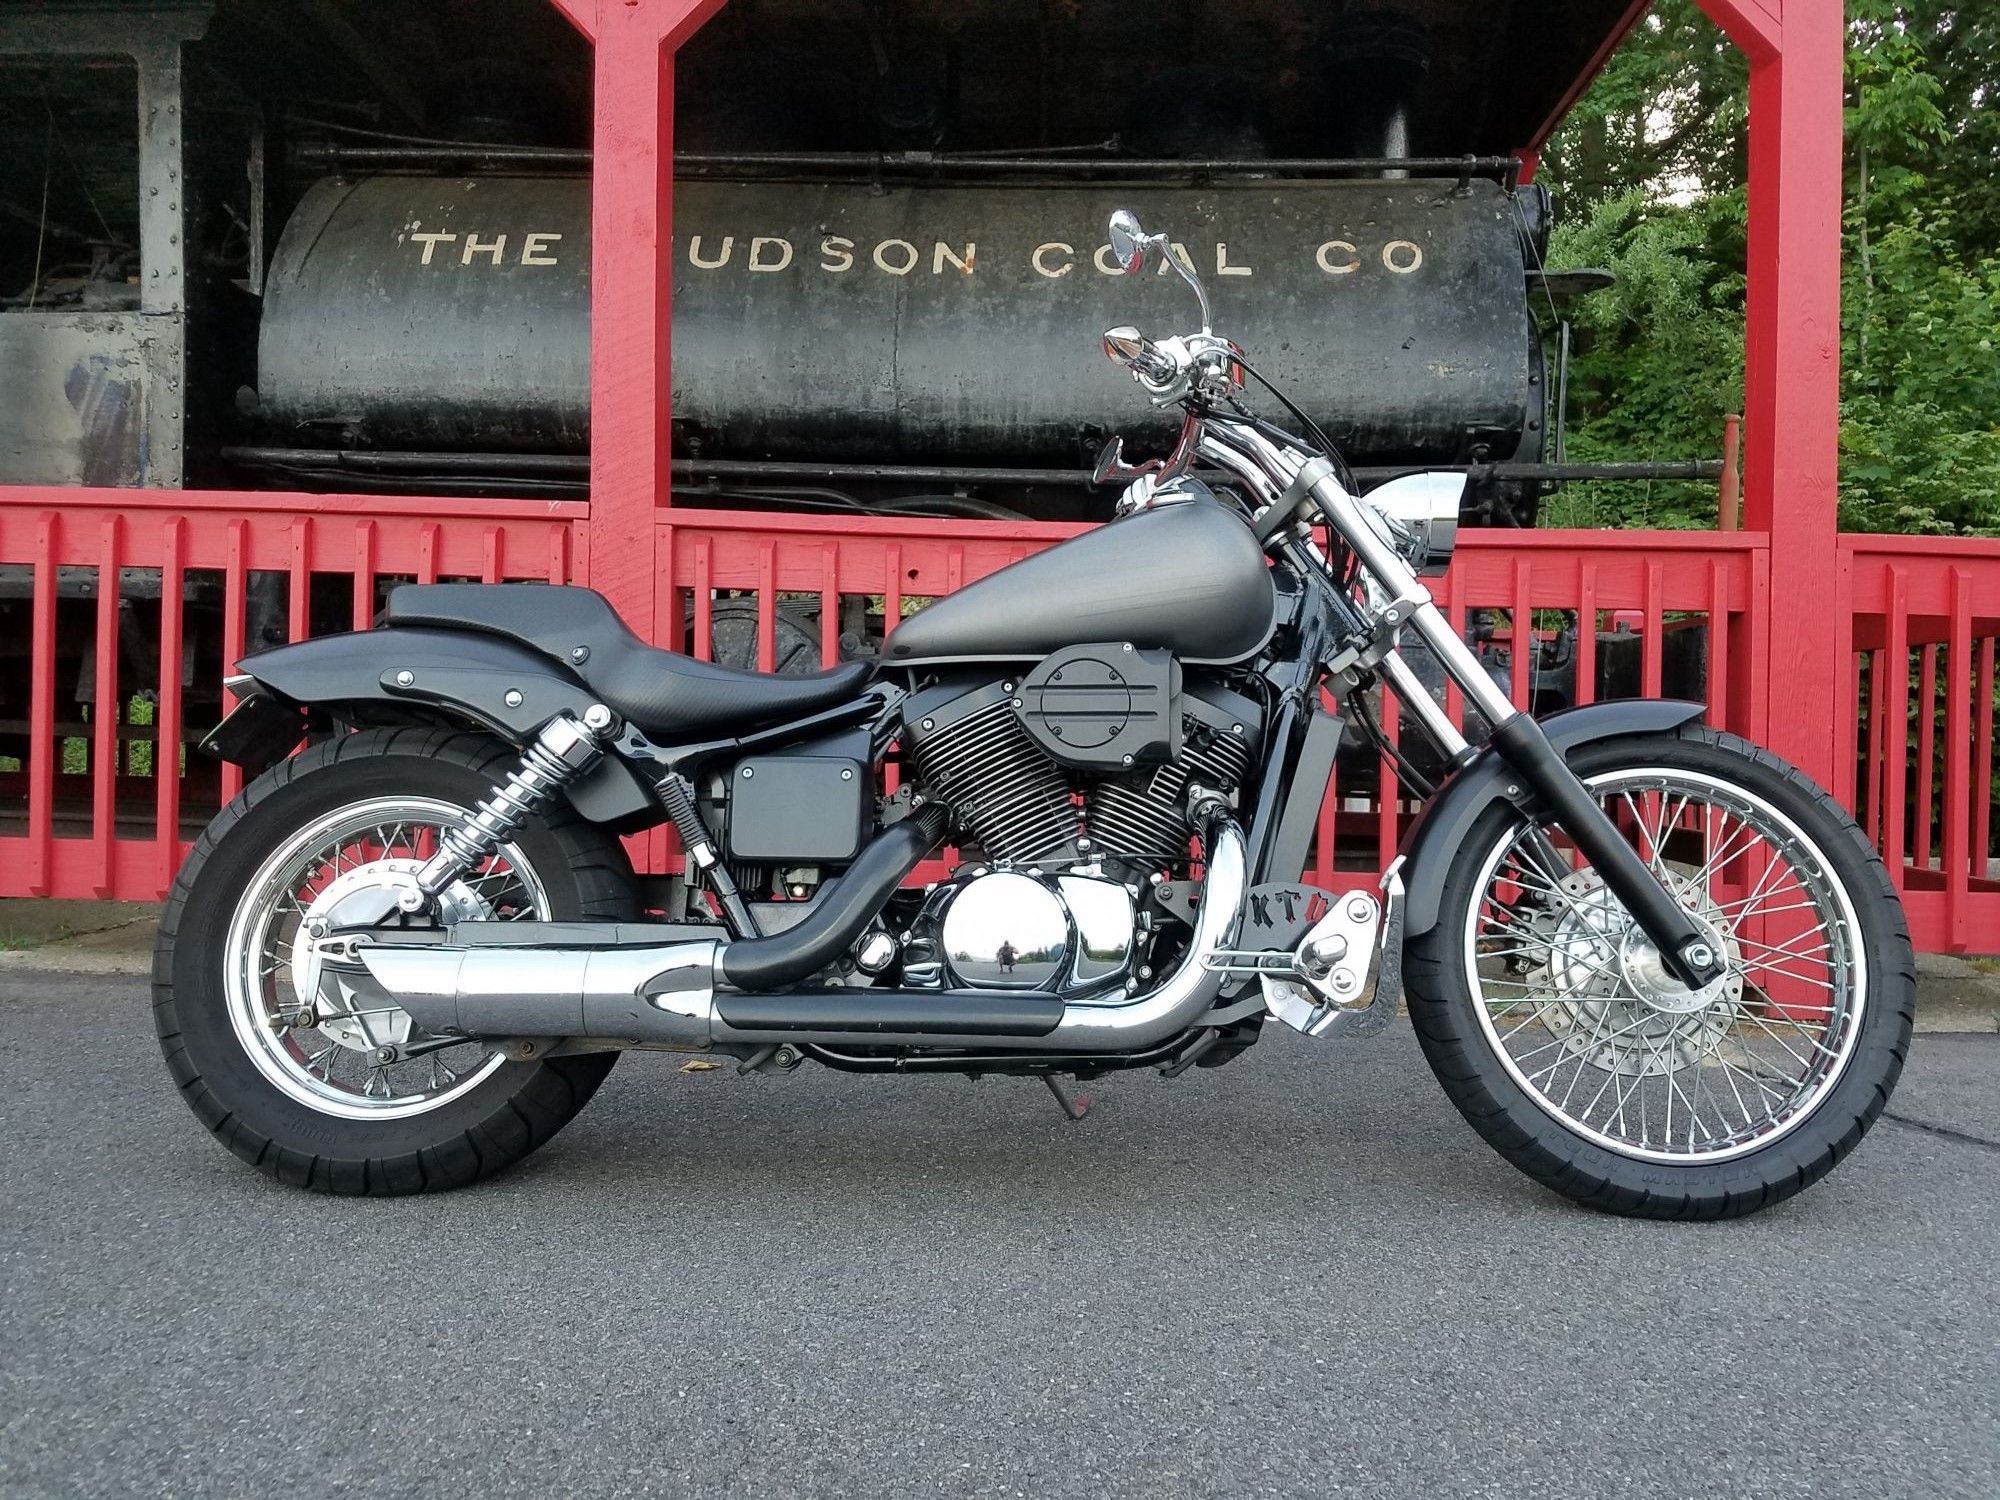 2005 HONDA SHADOW SPIRIT 750   For Sale   Motorcycles   Paper Shop   Free  Classifieds